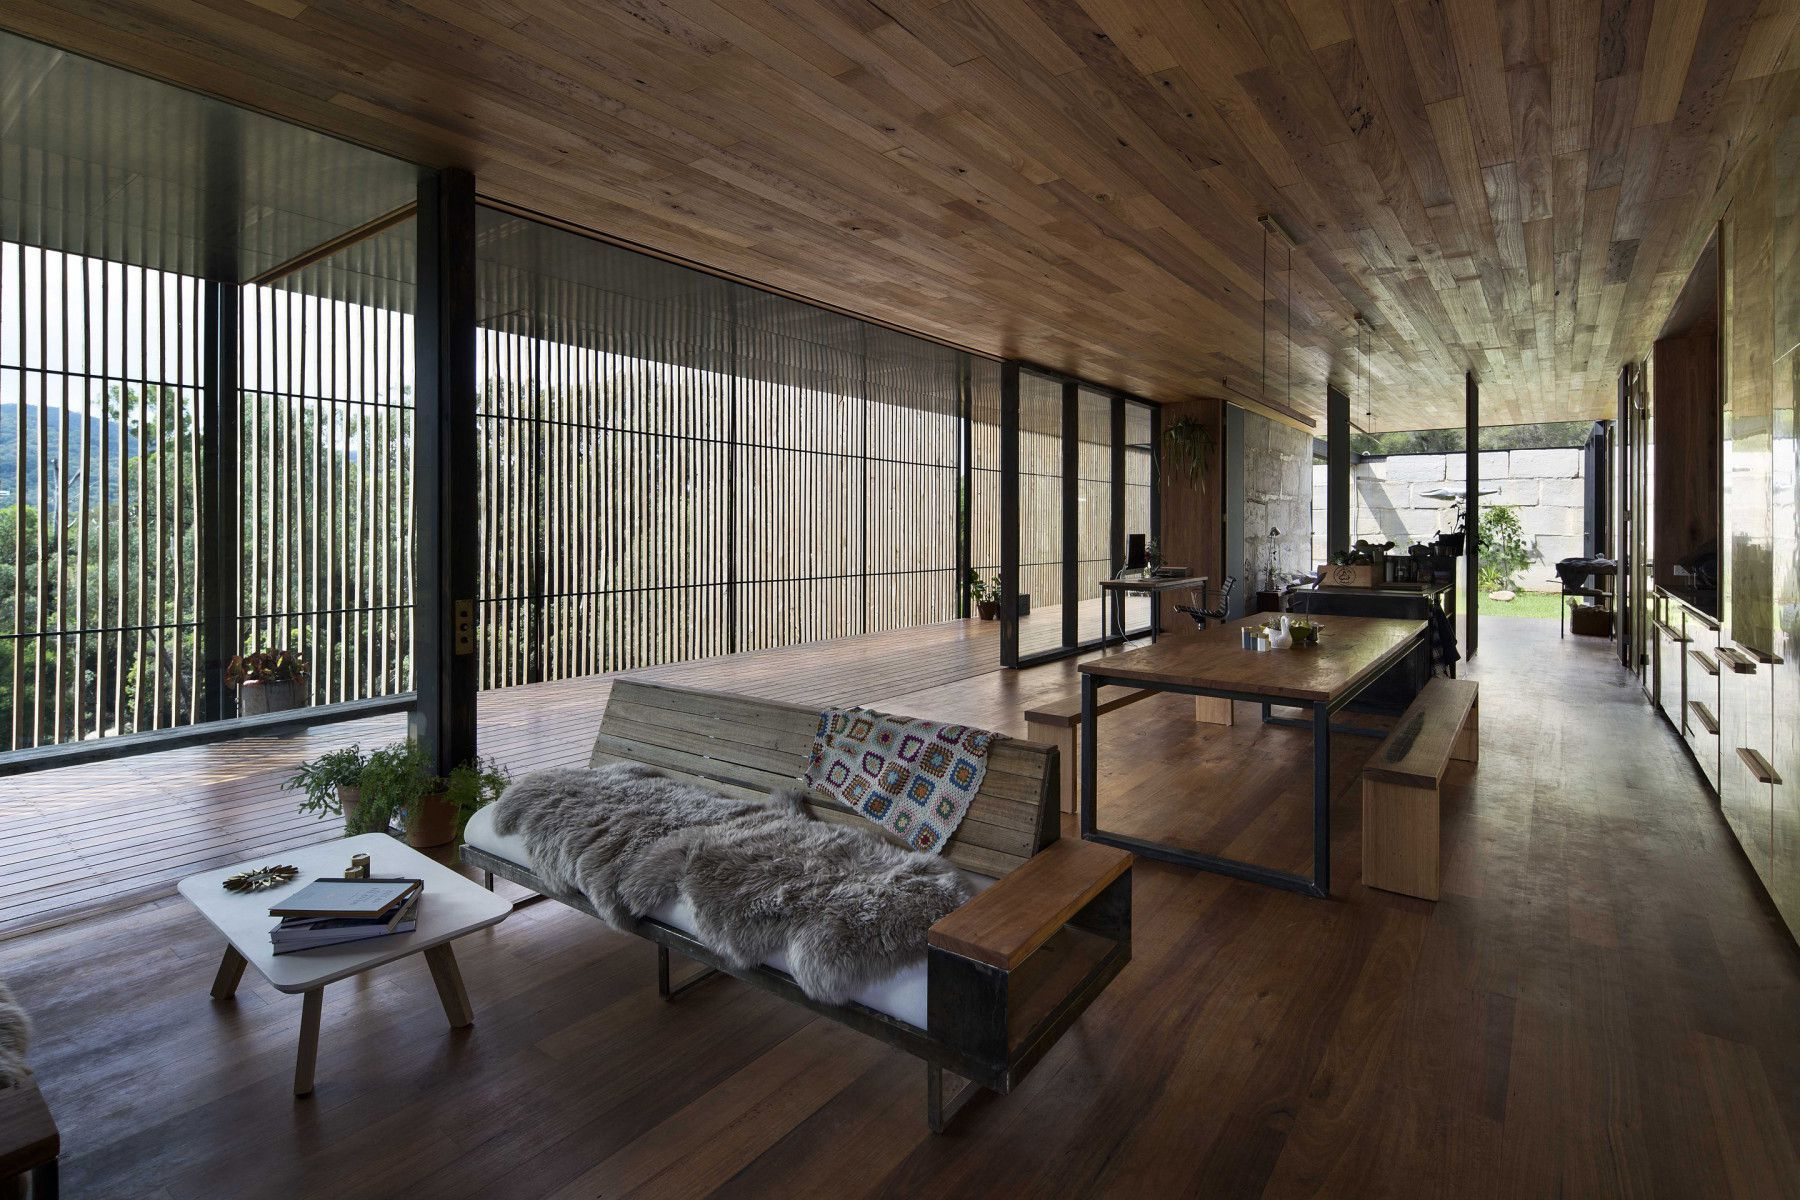 Concrete blocks and wooden interior architecture